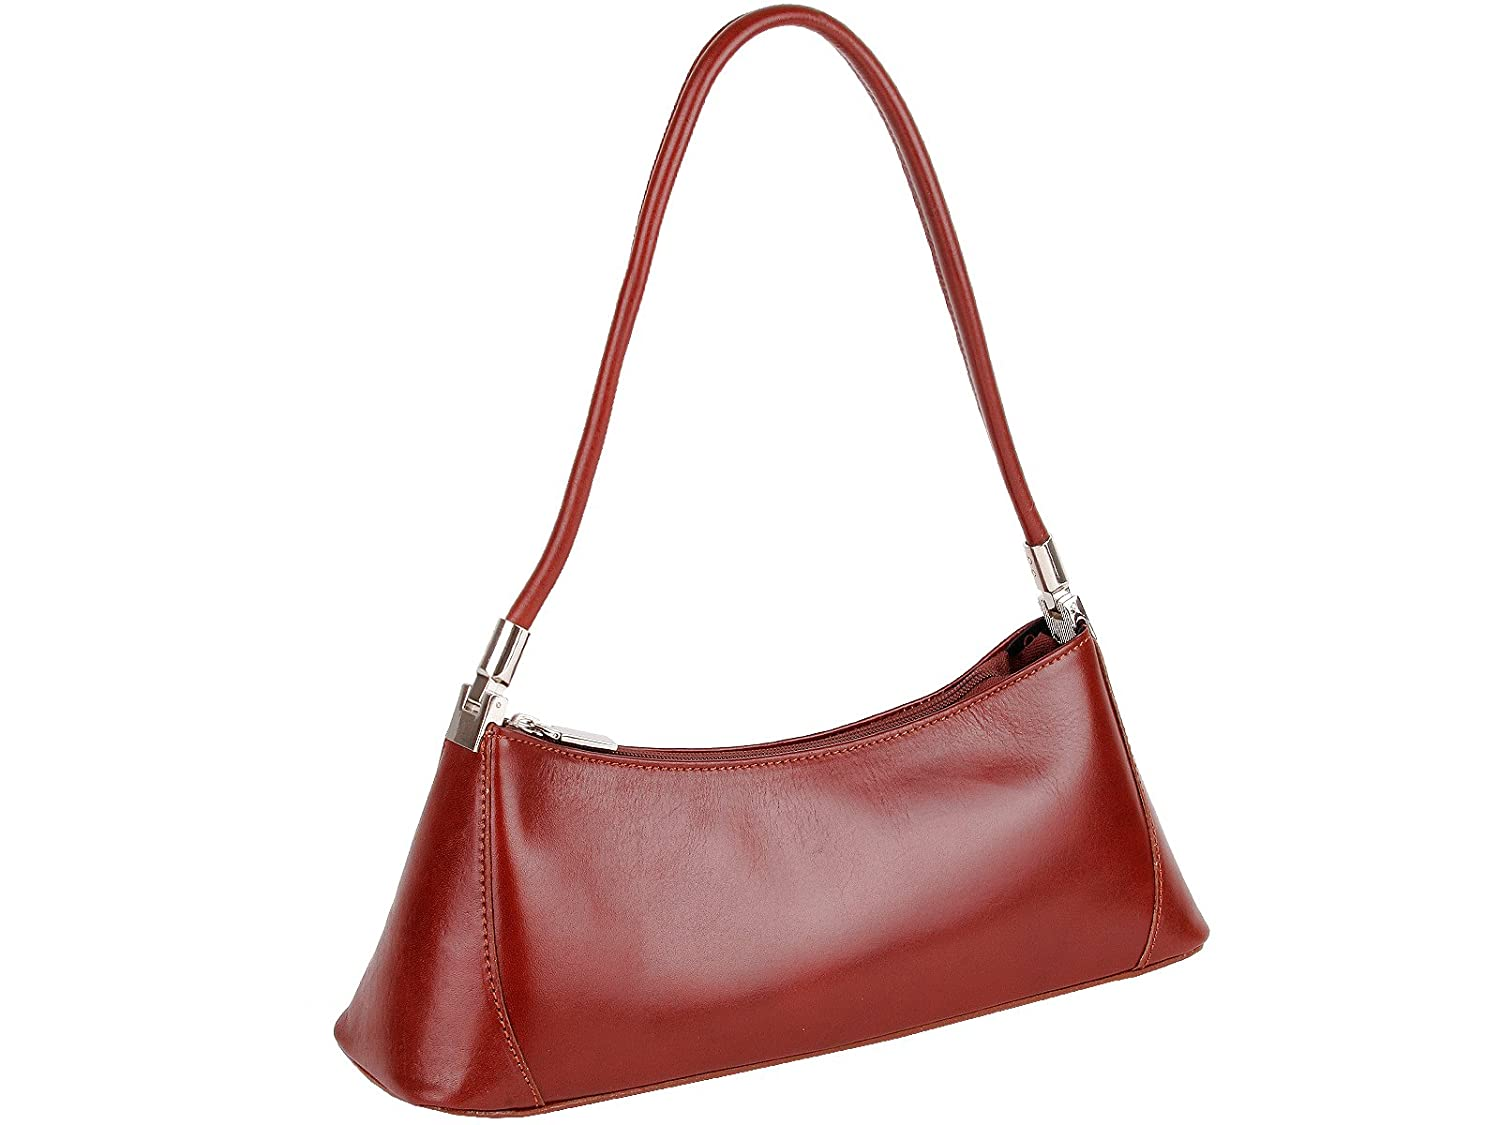 scarlet Bijoux-Handbag Made from leather in different colours), 33 x 13.5 x 9 CM (B x H x T)